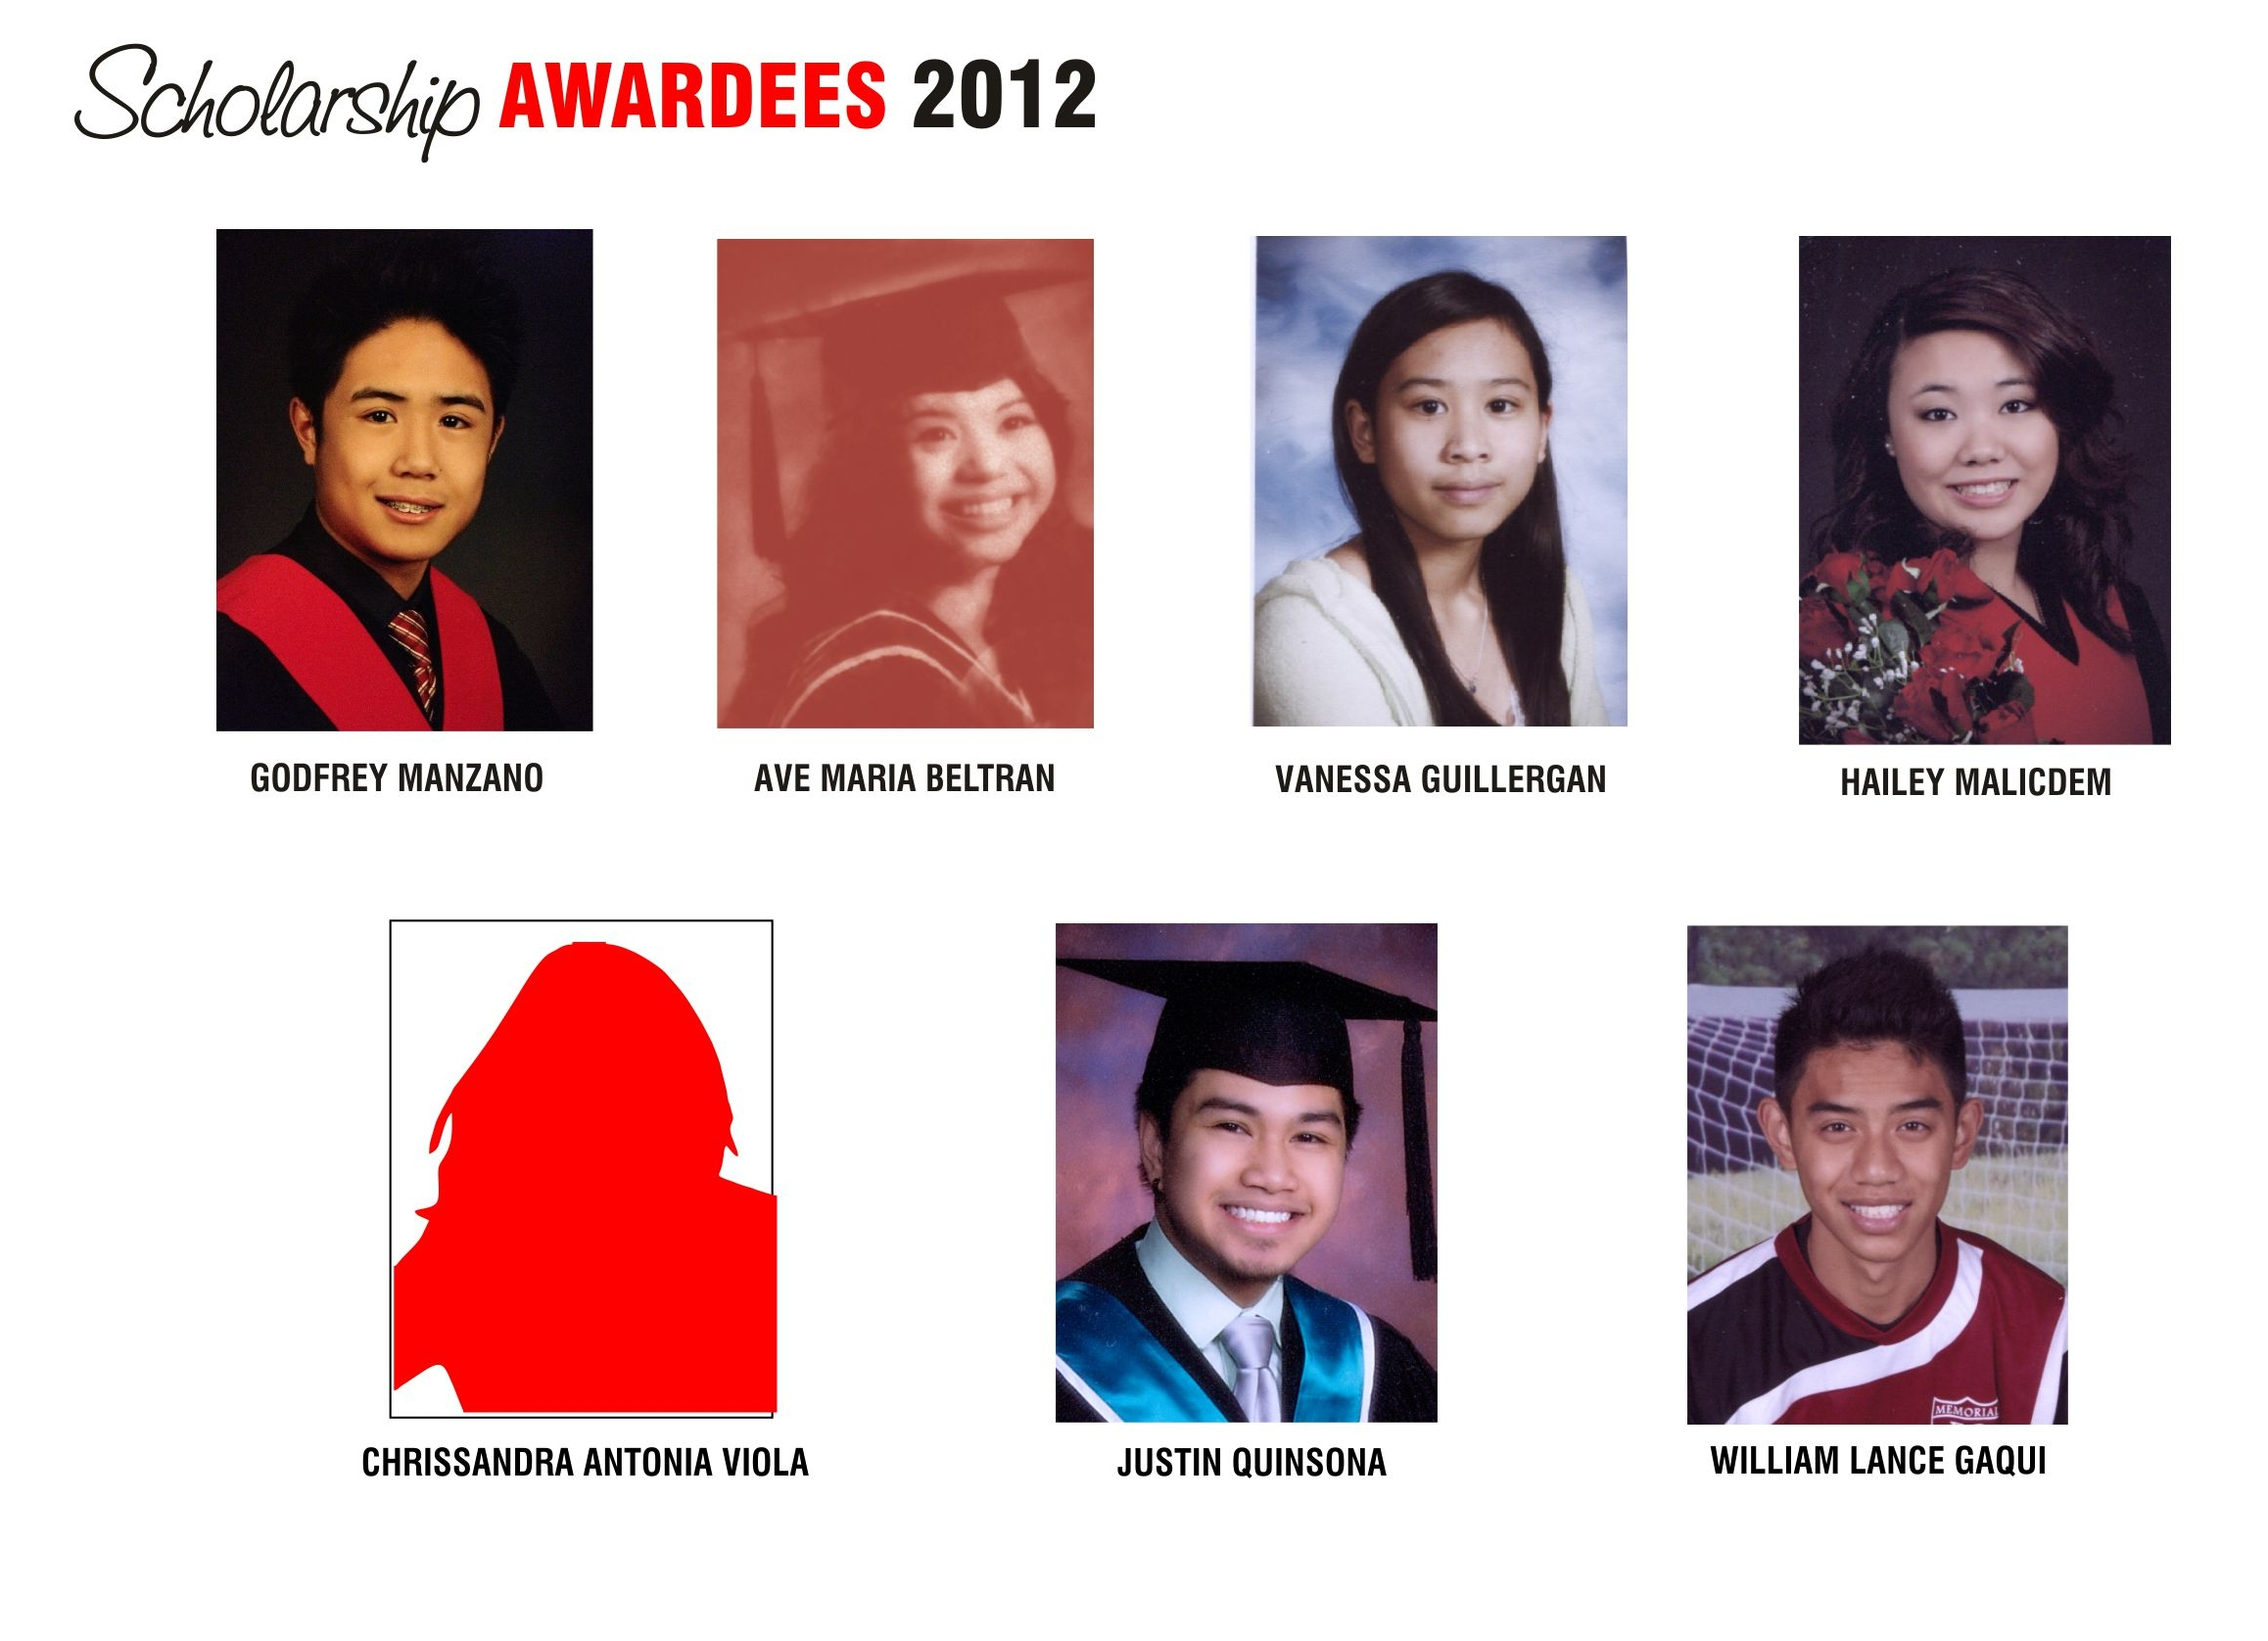 PASOC Scholarship Awardees 2012